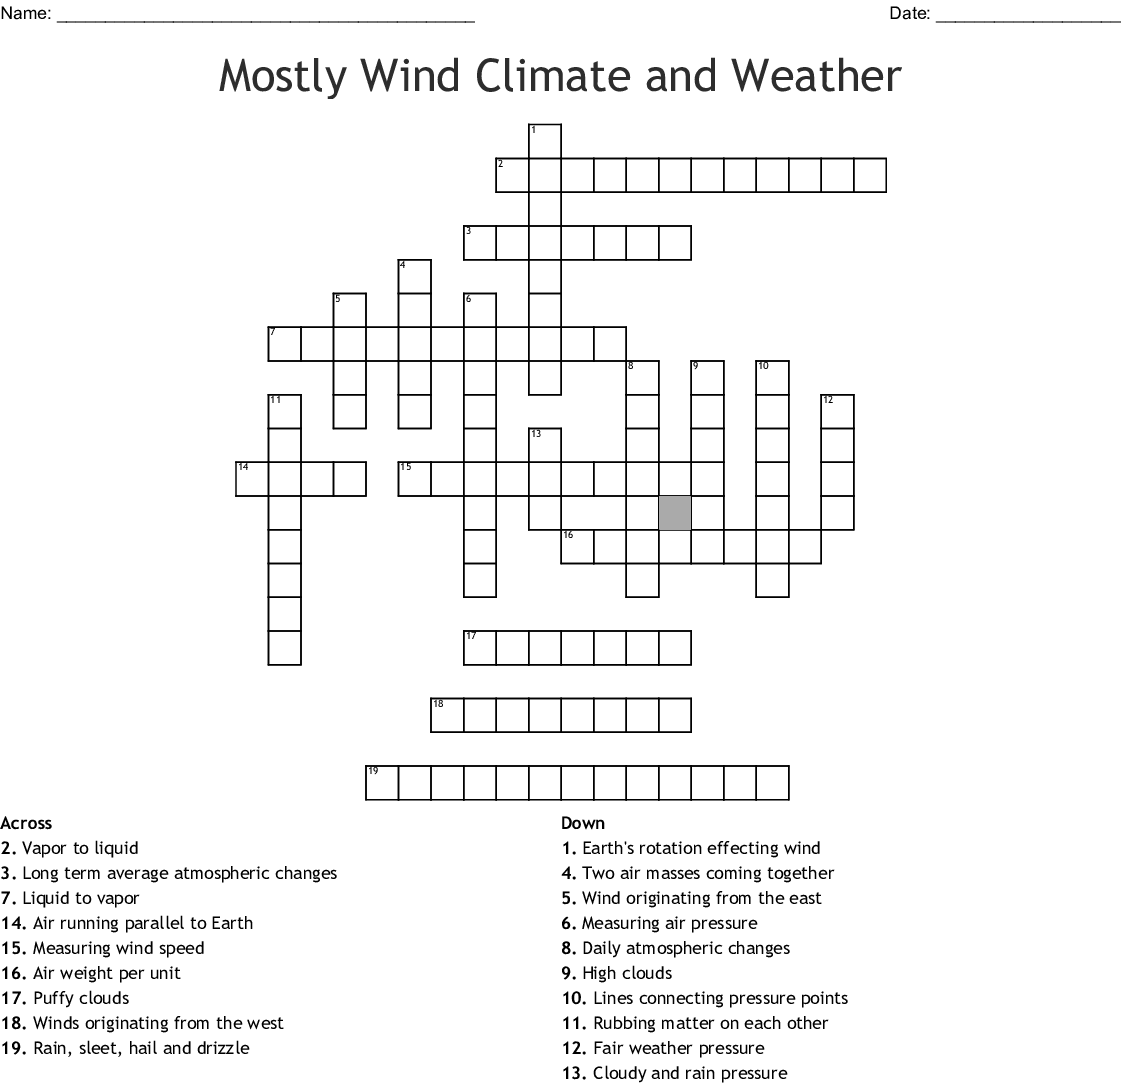 Mostly Wind Climate And Weather Crossword